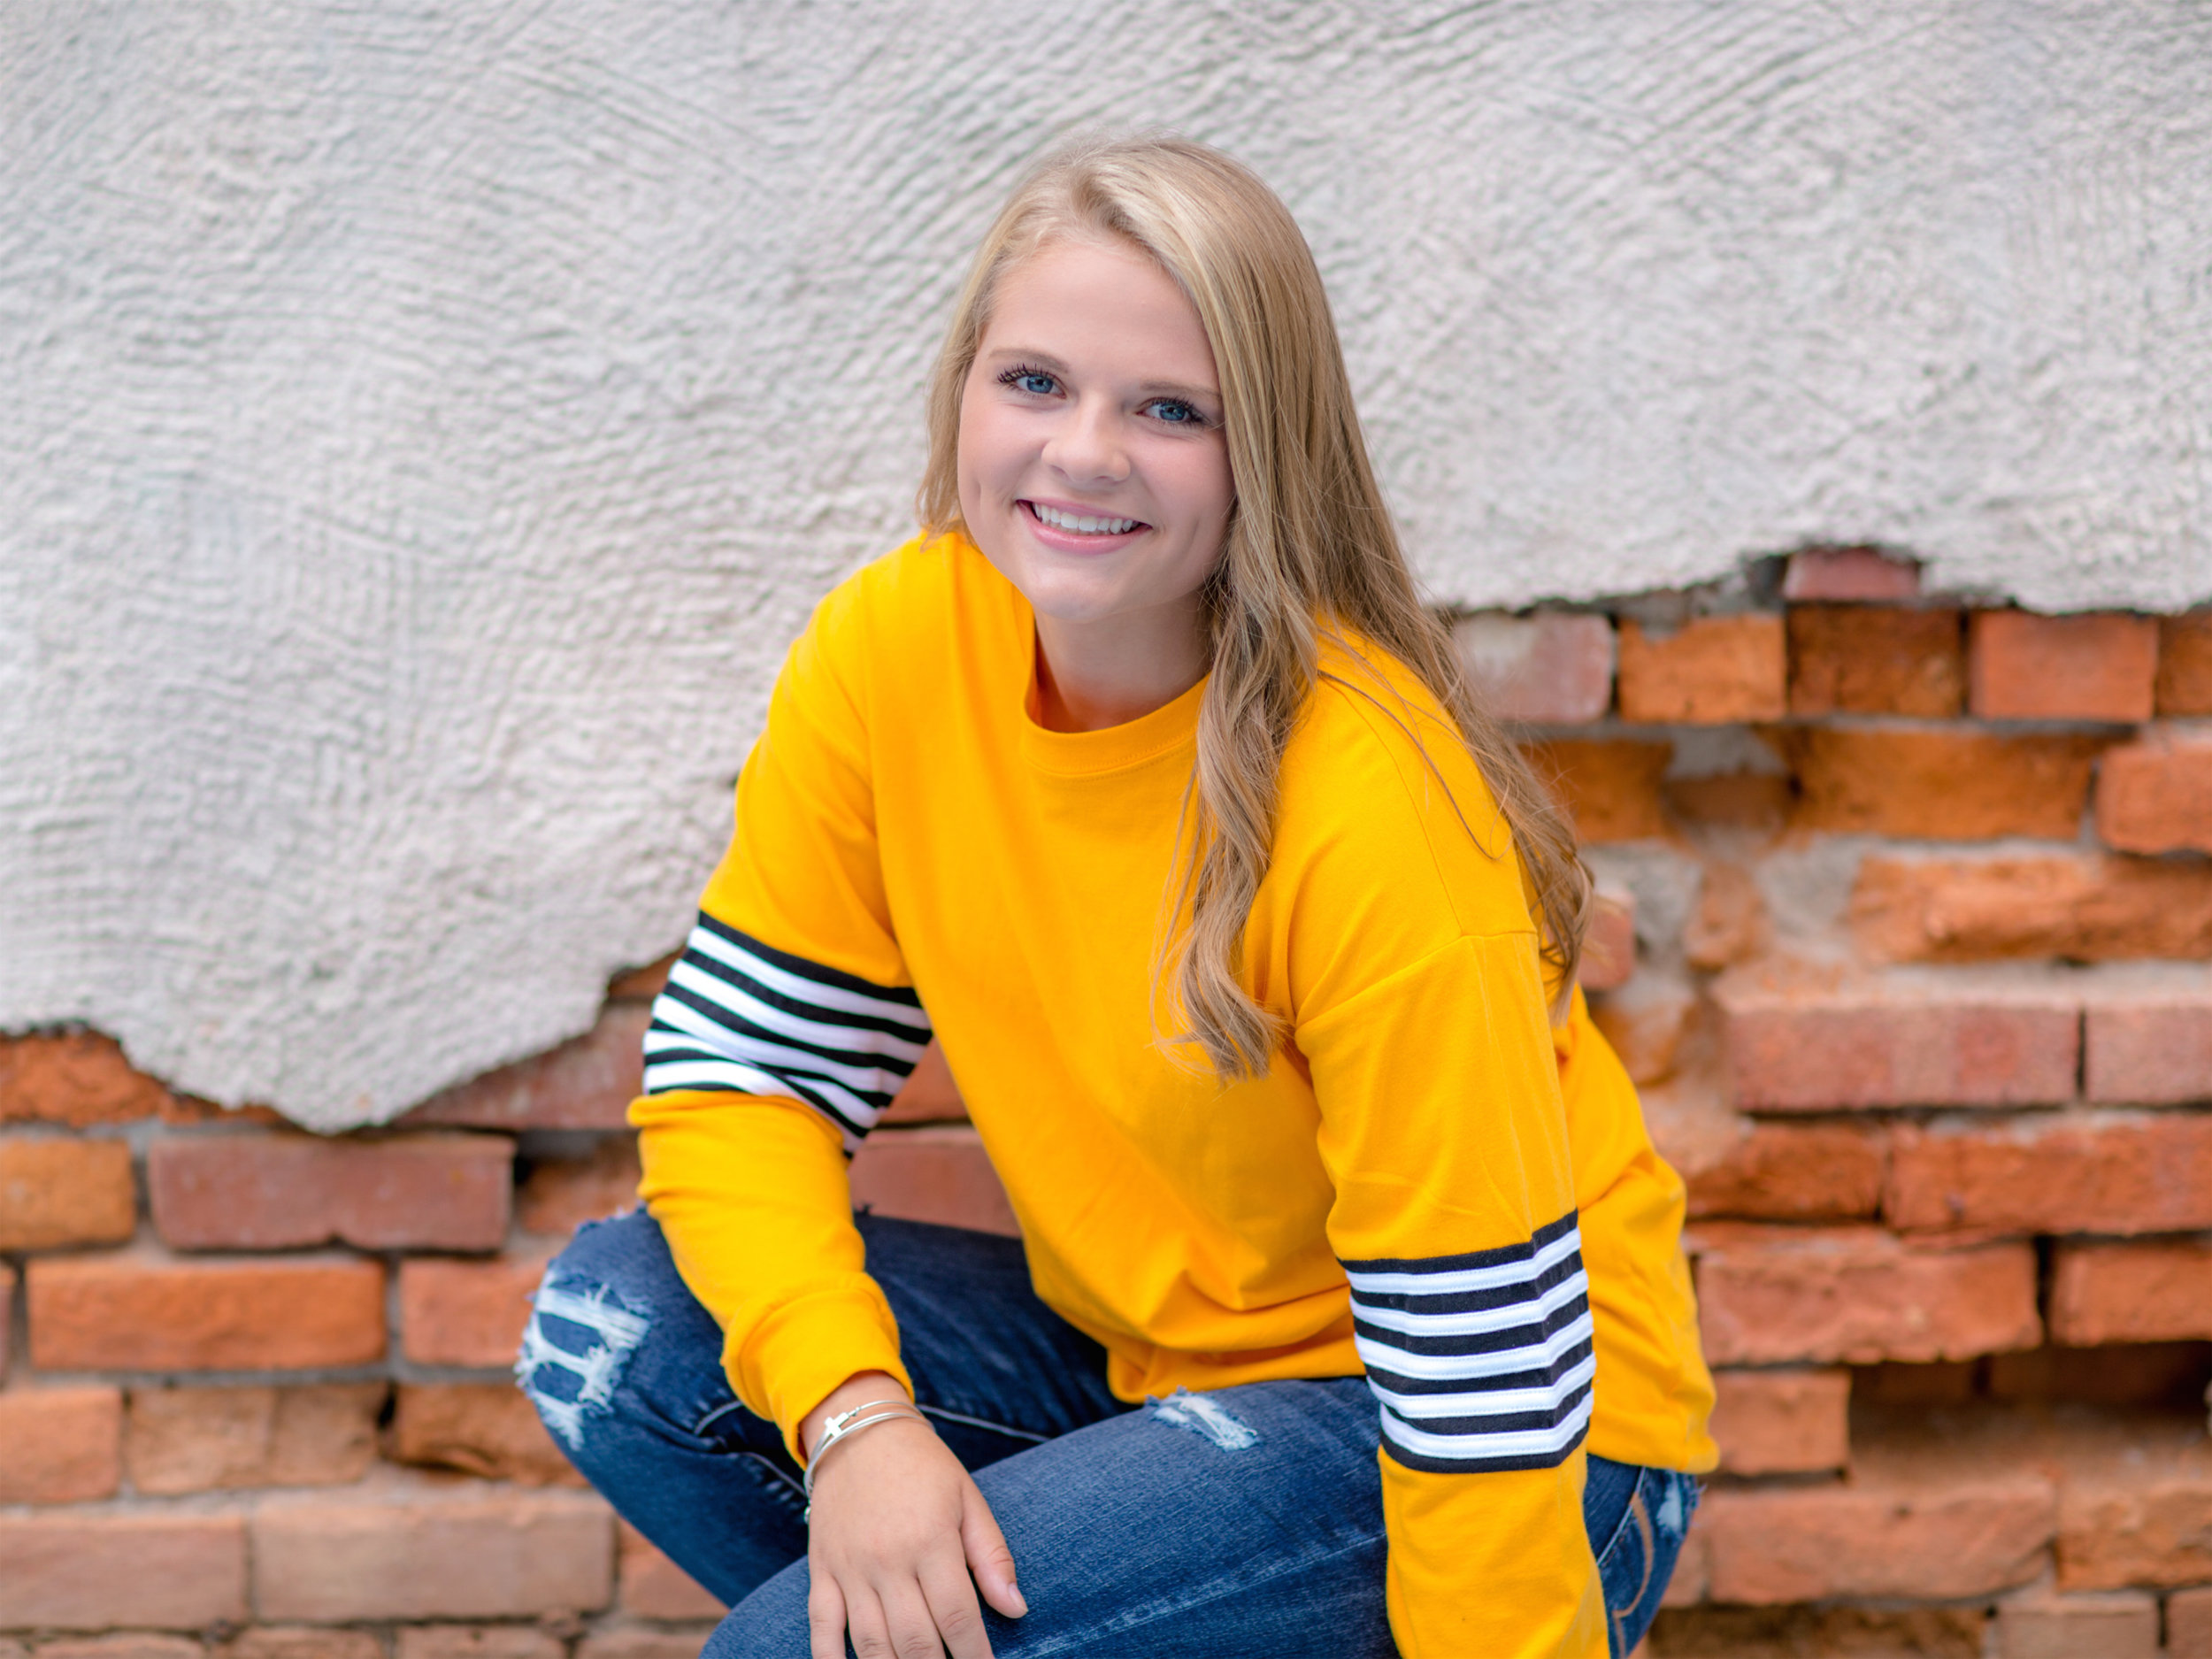 Alexis_Scalise_Senior_05.jpg